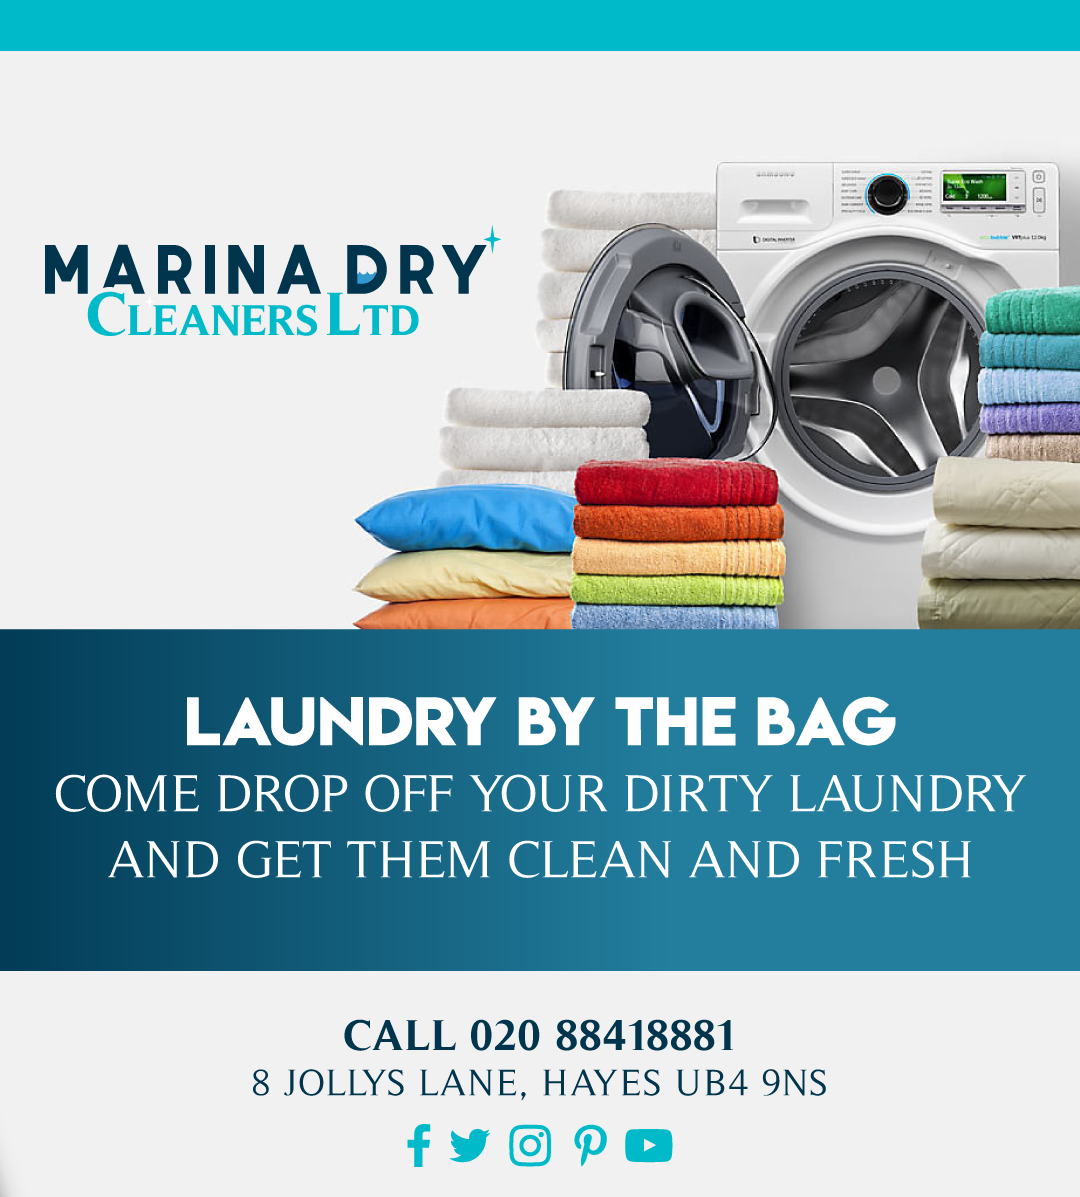 Laundry By The Bag Call Us On 020 8841 8881 Dry Cleaner Super